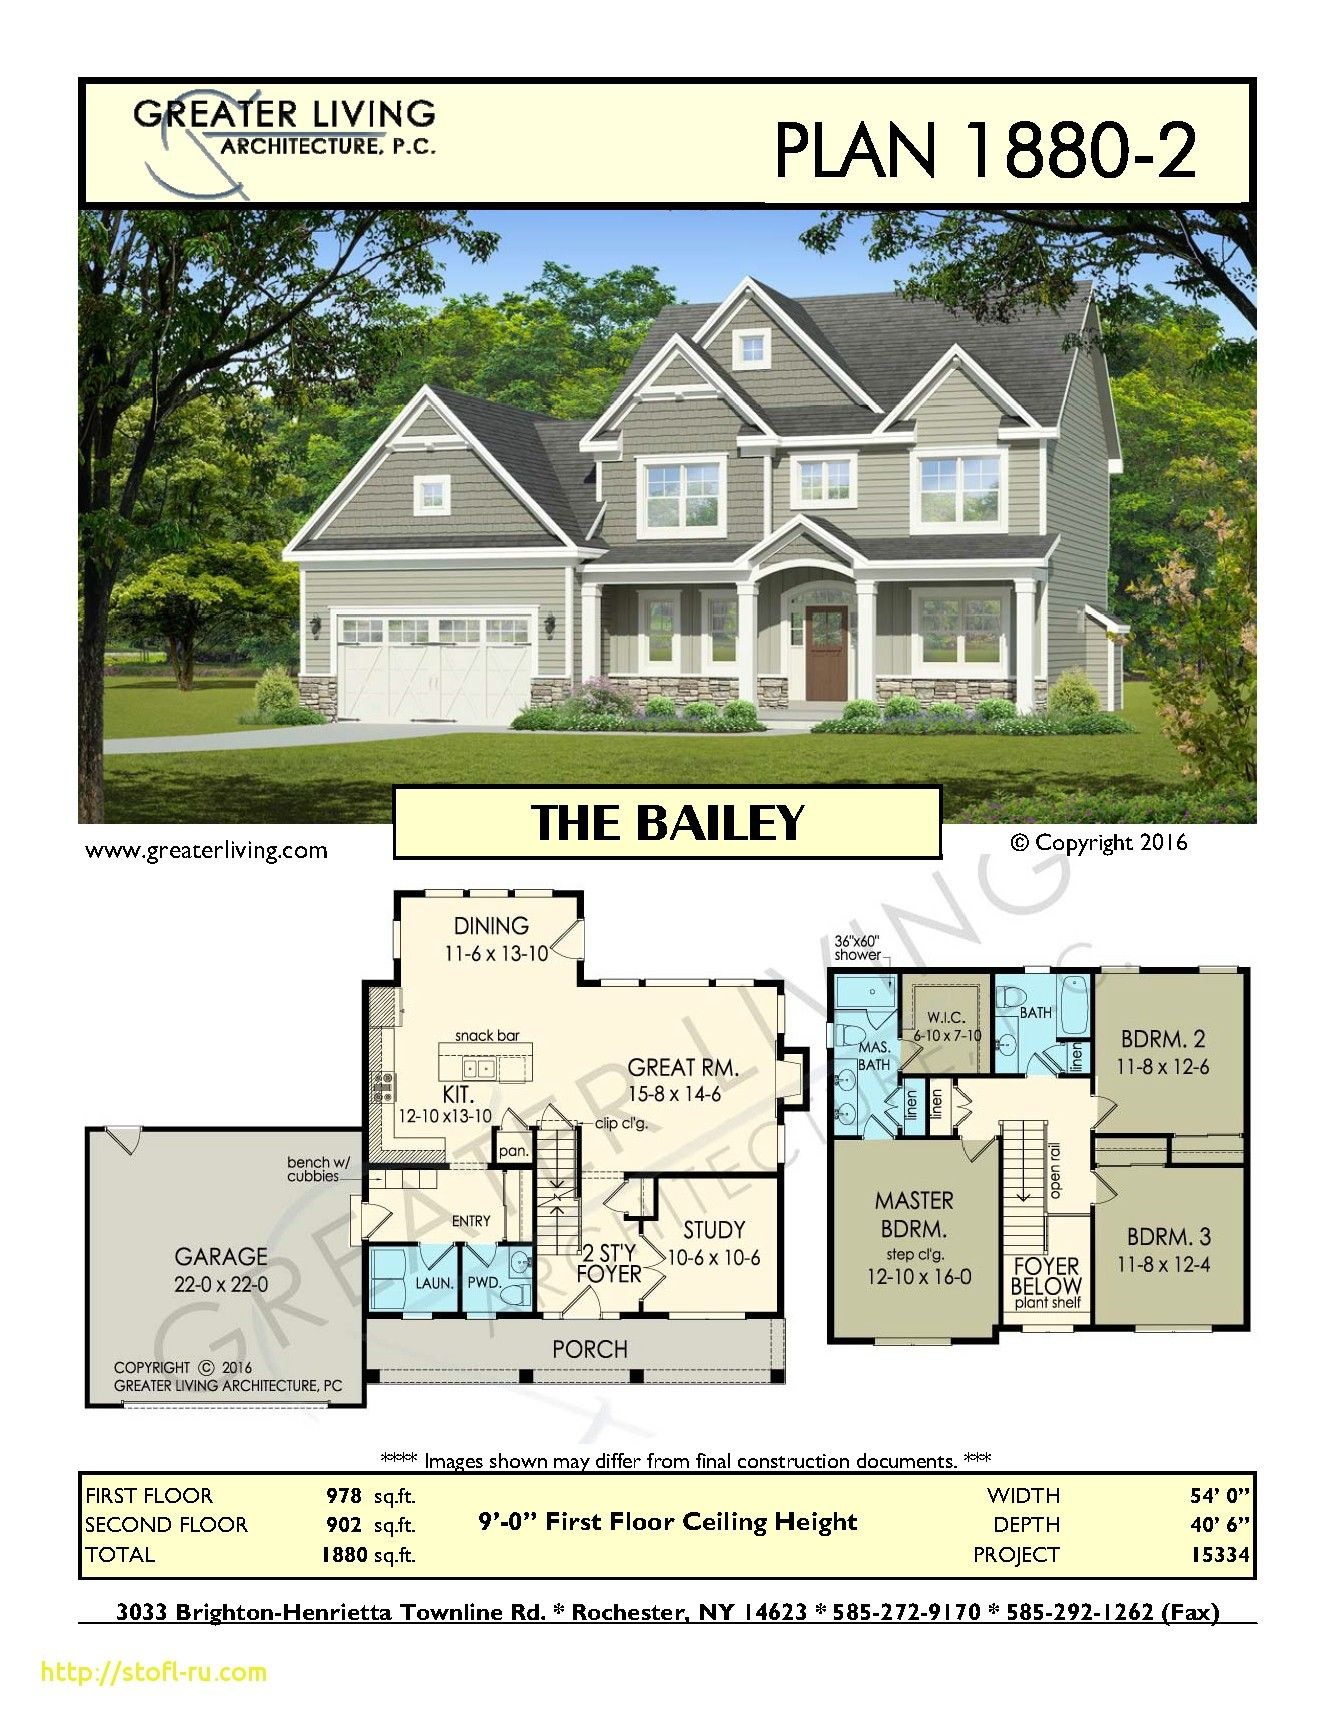 Big family home plans modern style house design ideas homeplans homedesign houseplans housedesign housefloorplans smallhouseplanswithopenfloorplan also rh pinterest